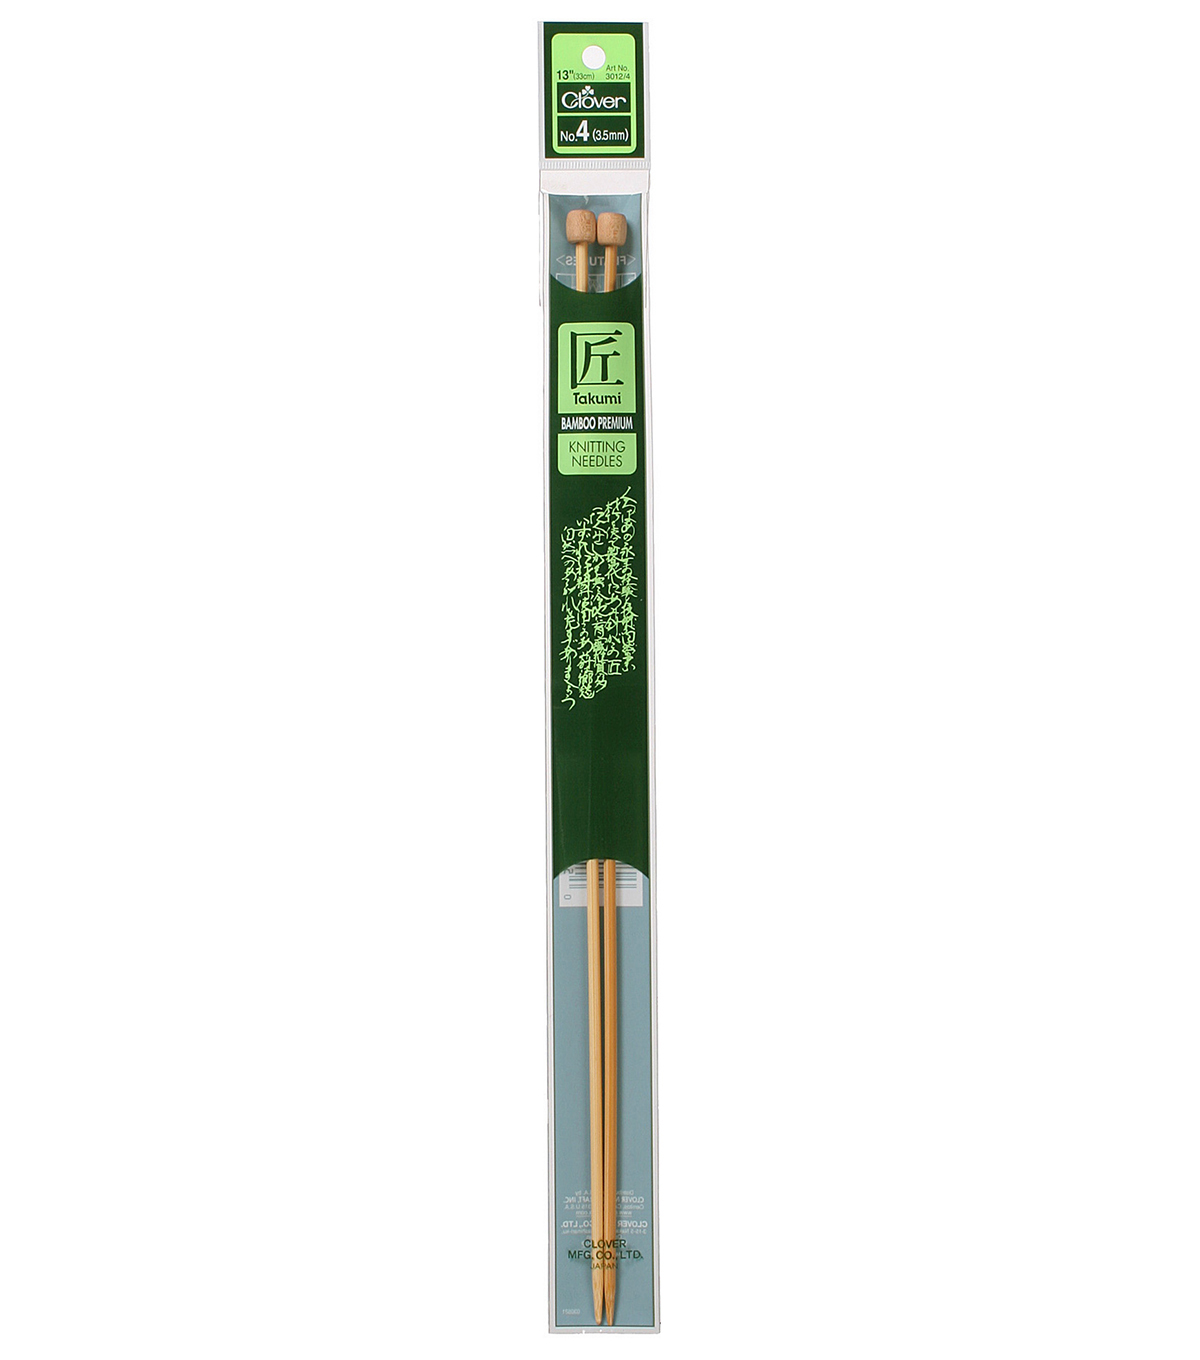 Clover Takumi Bamboo Knit Needle-Single Pt. 13\u0022-Size 4